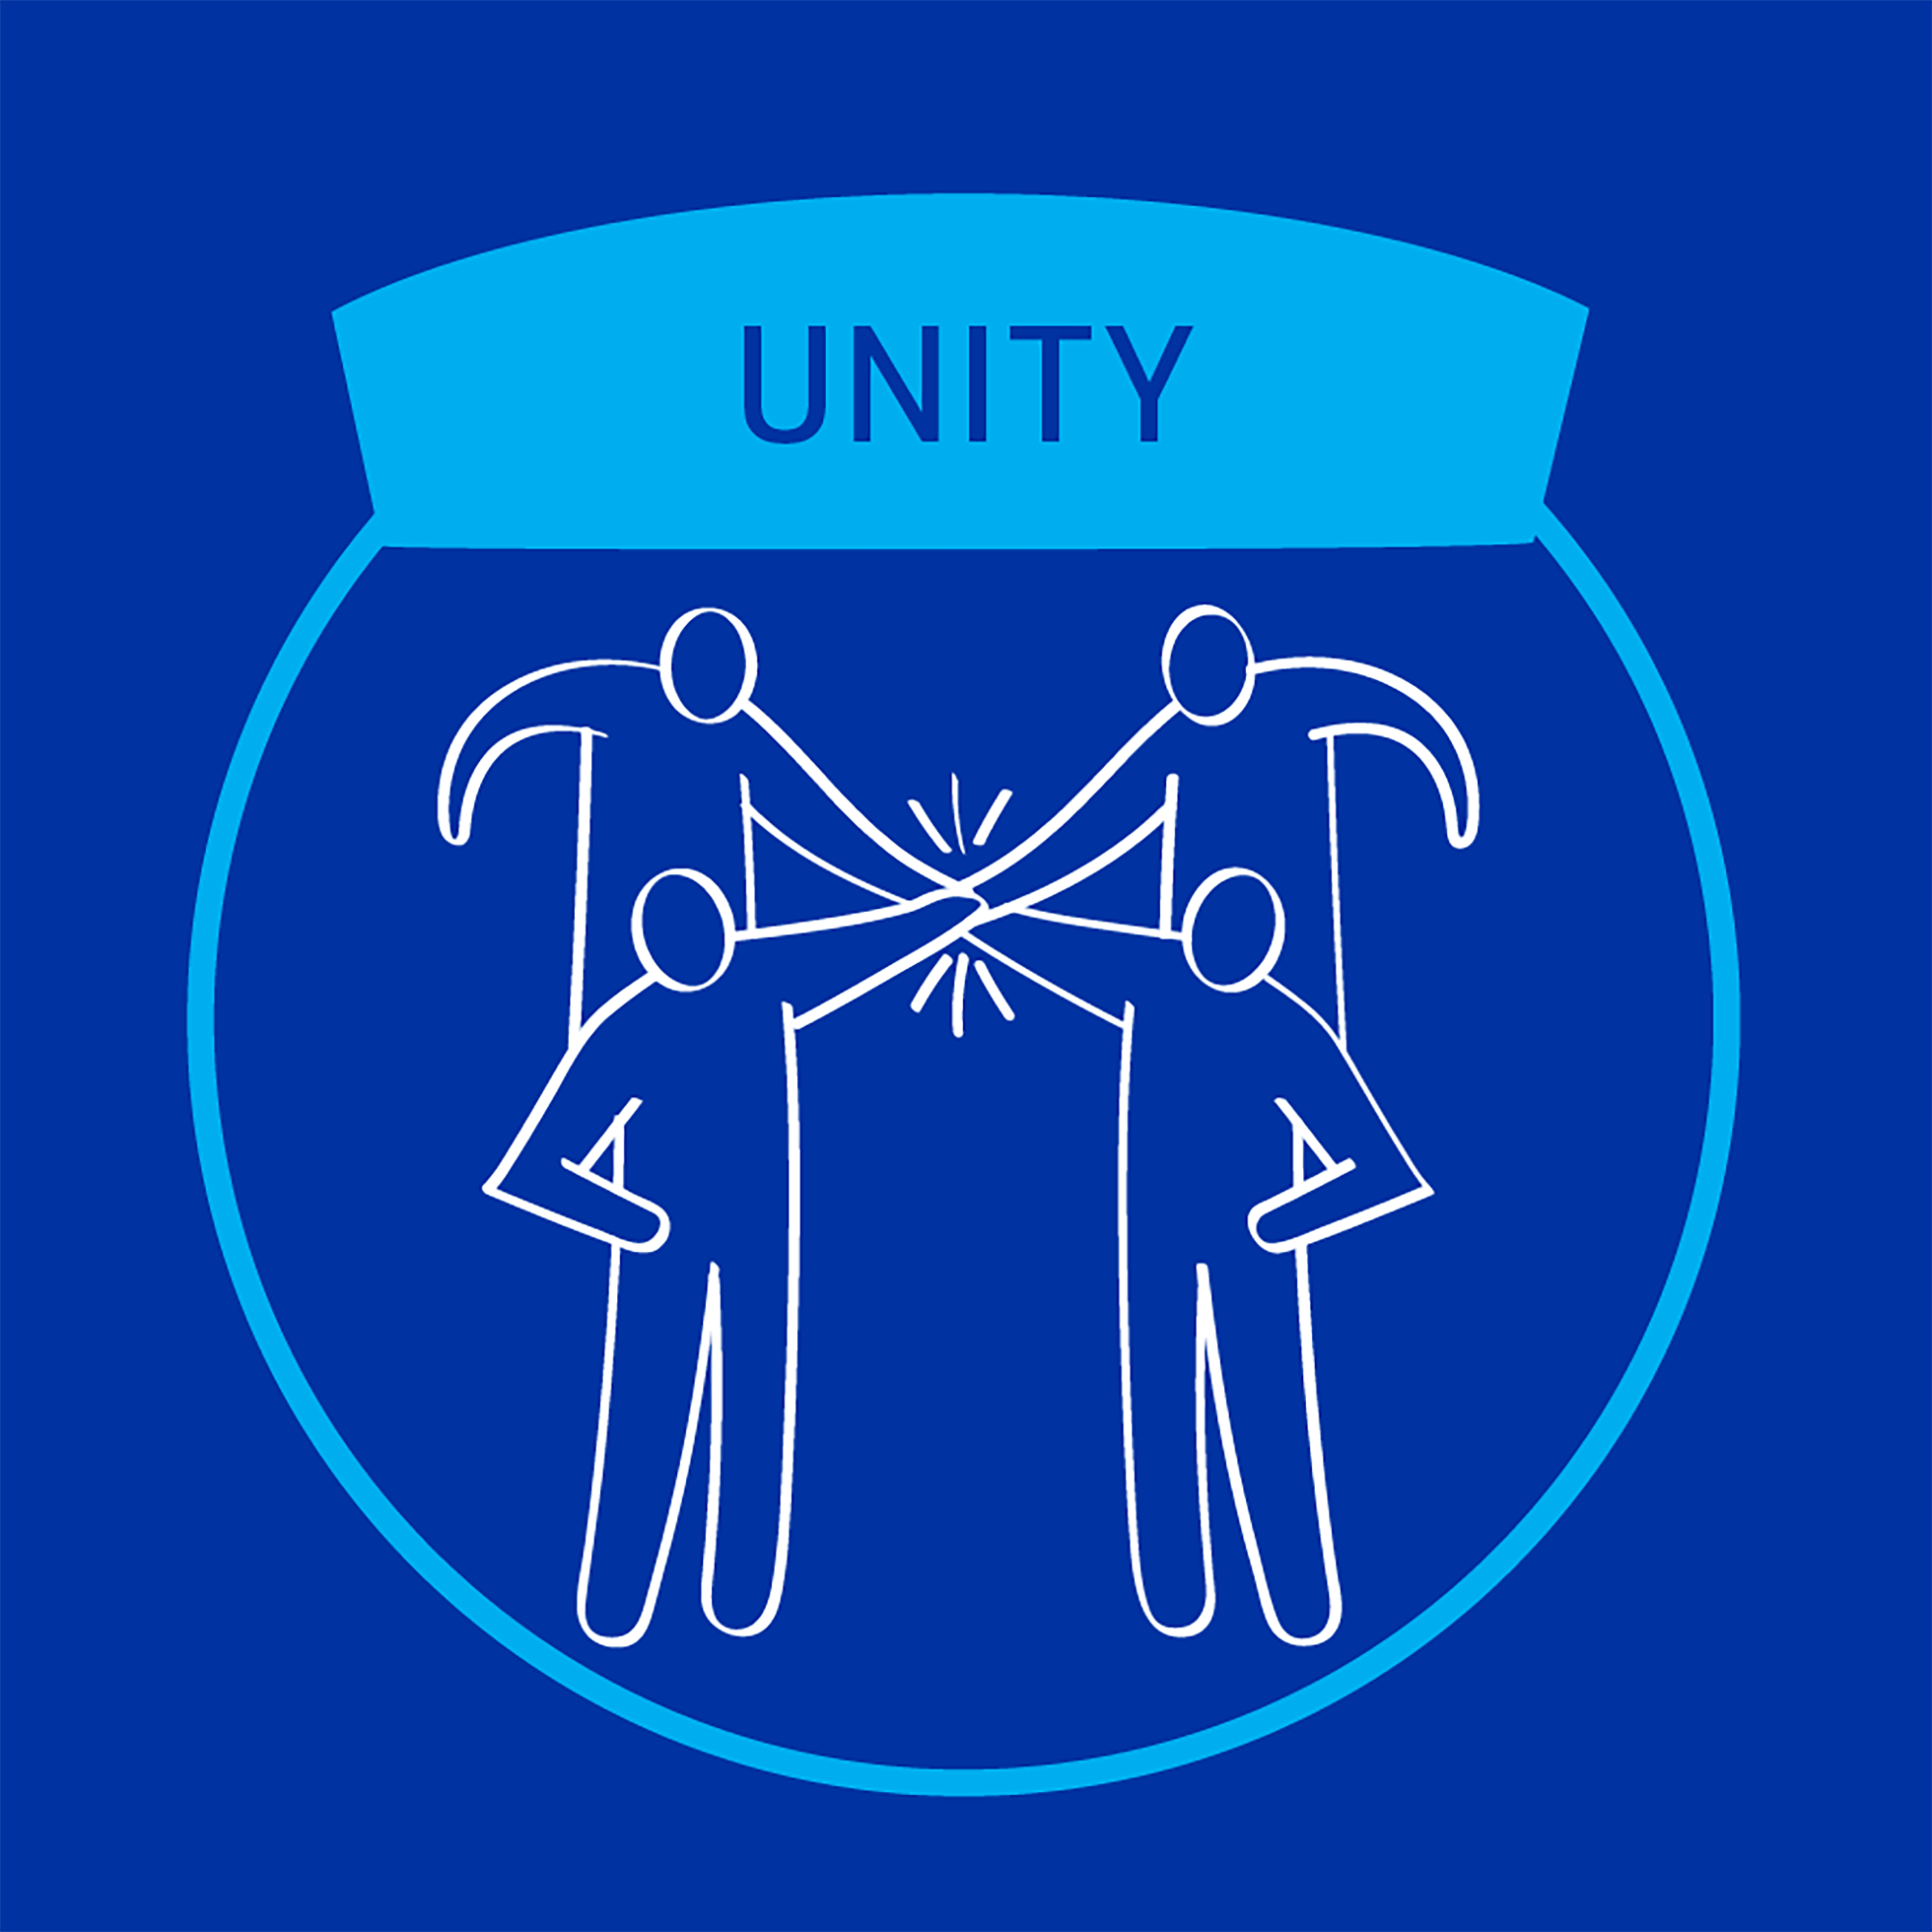 MiTek's guiding principle of unity - A square graphic of four people with their hands connected in the middle